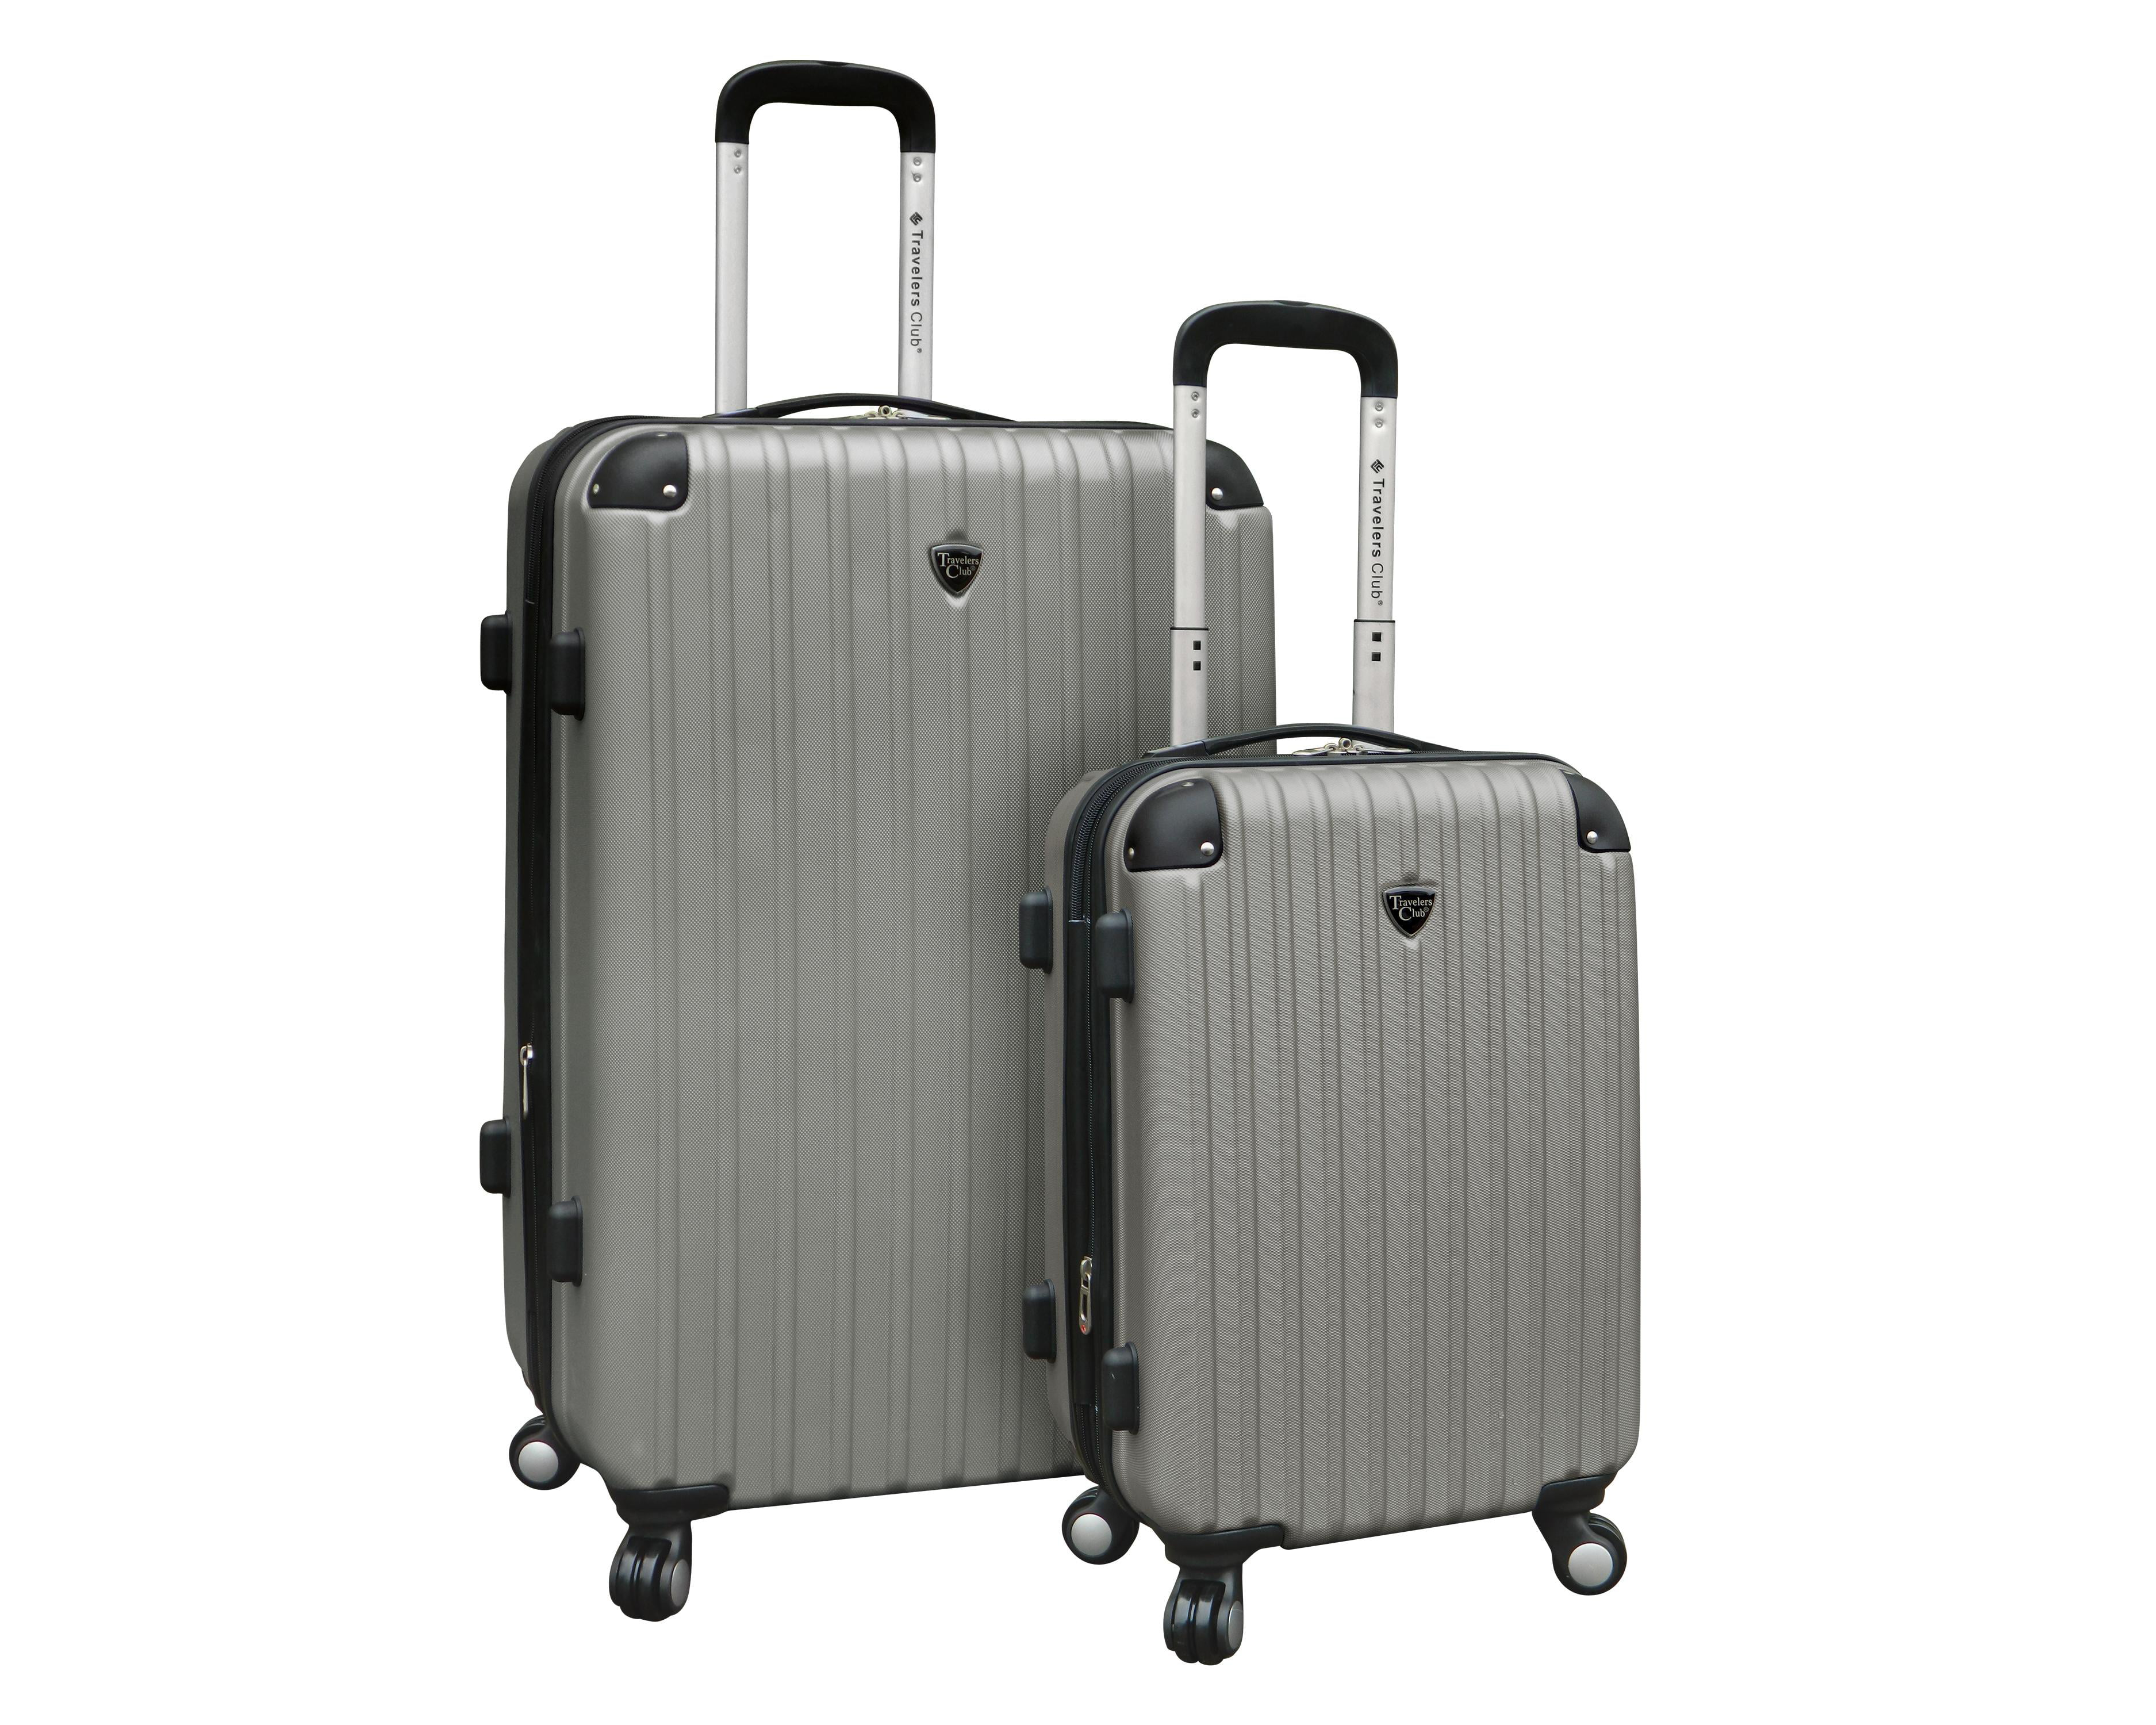 Travelers Club 2 pc. Expandable hard-side luggage set - Walmart.com